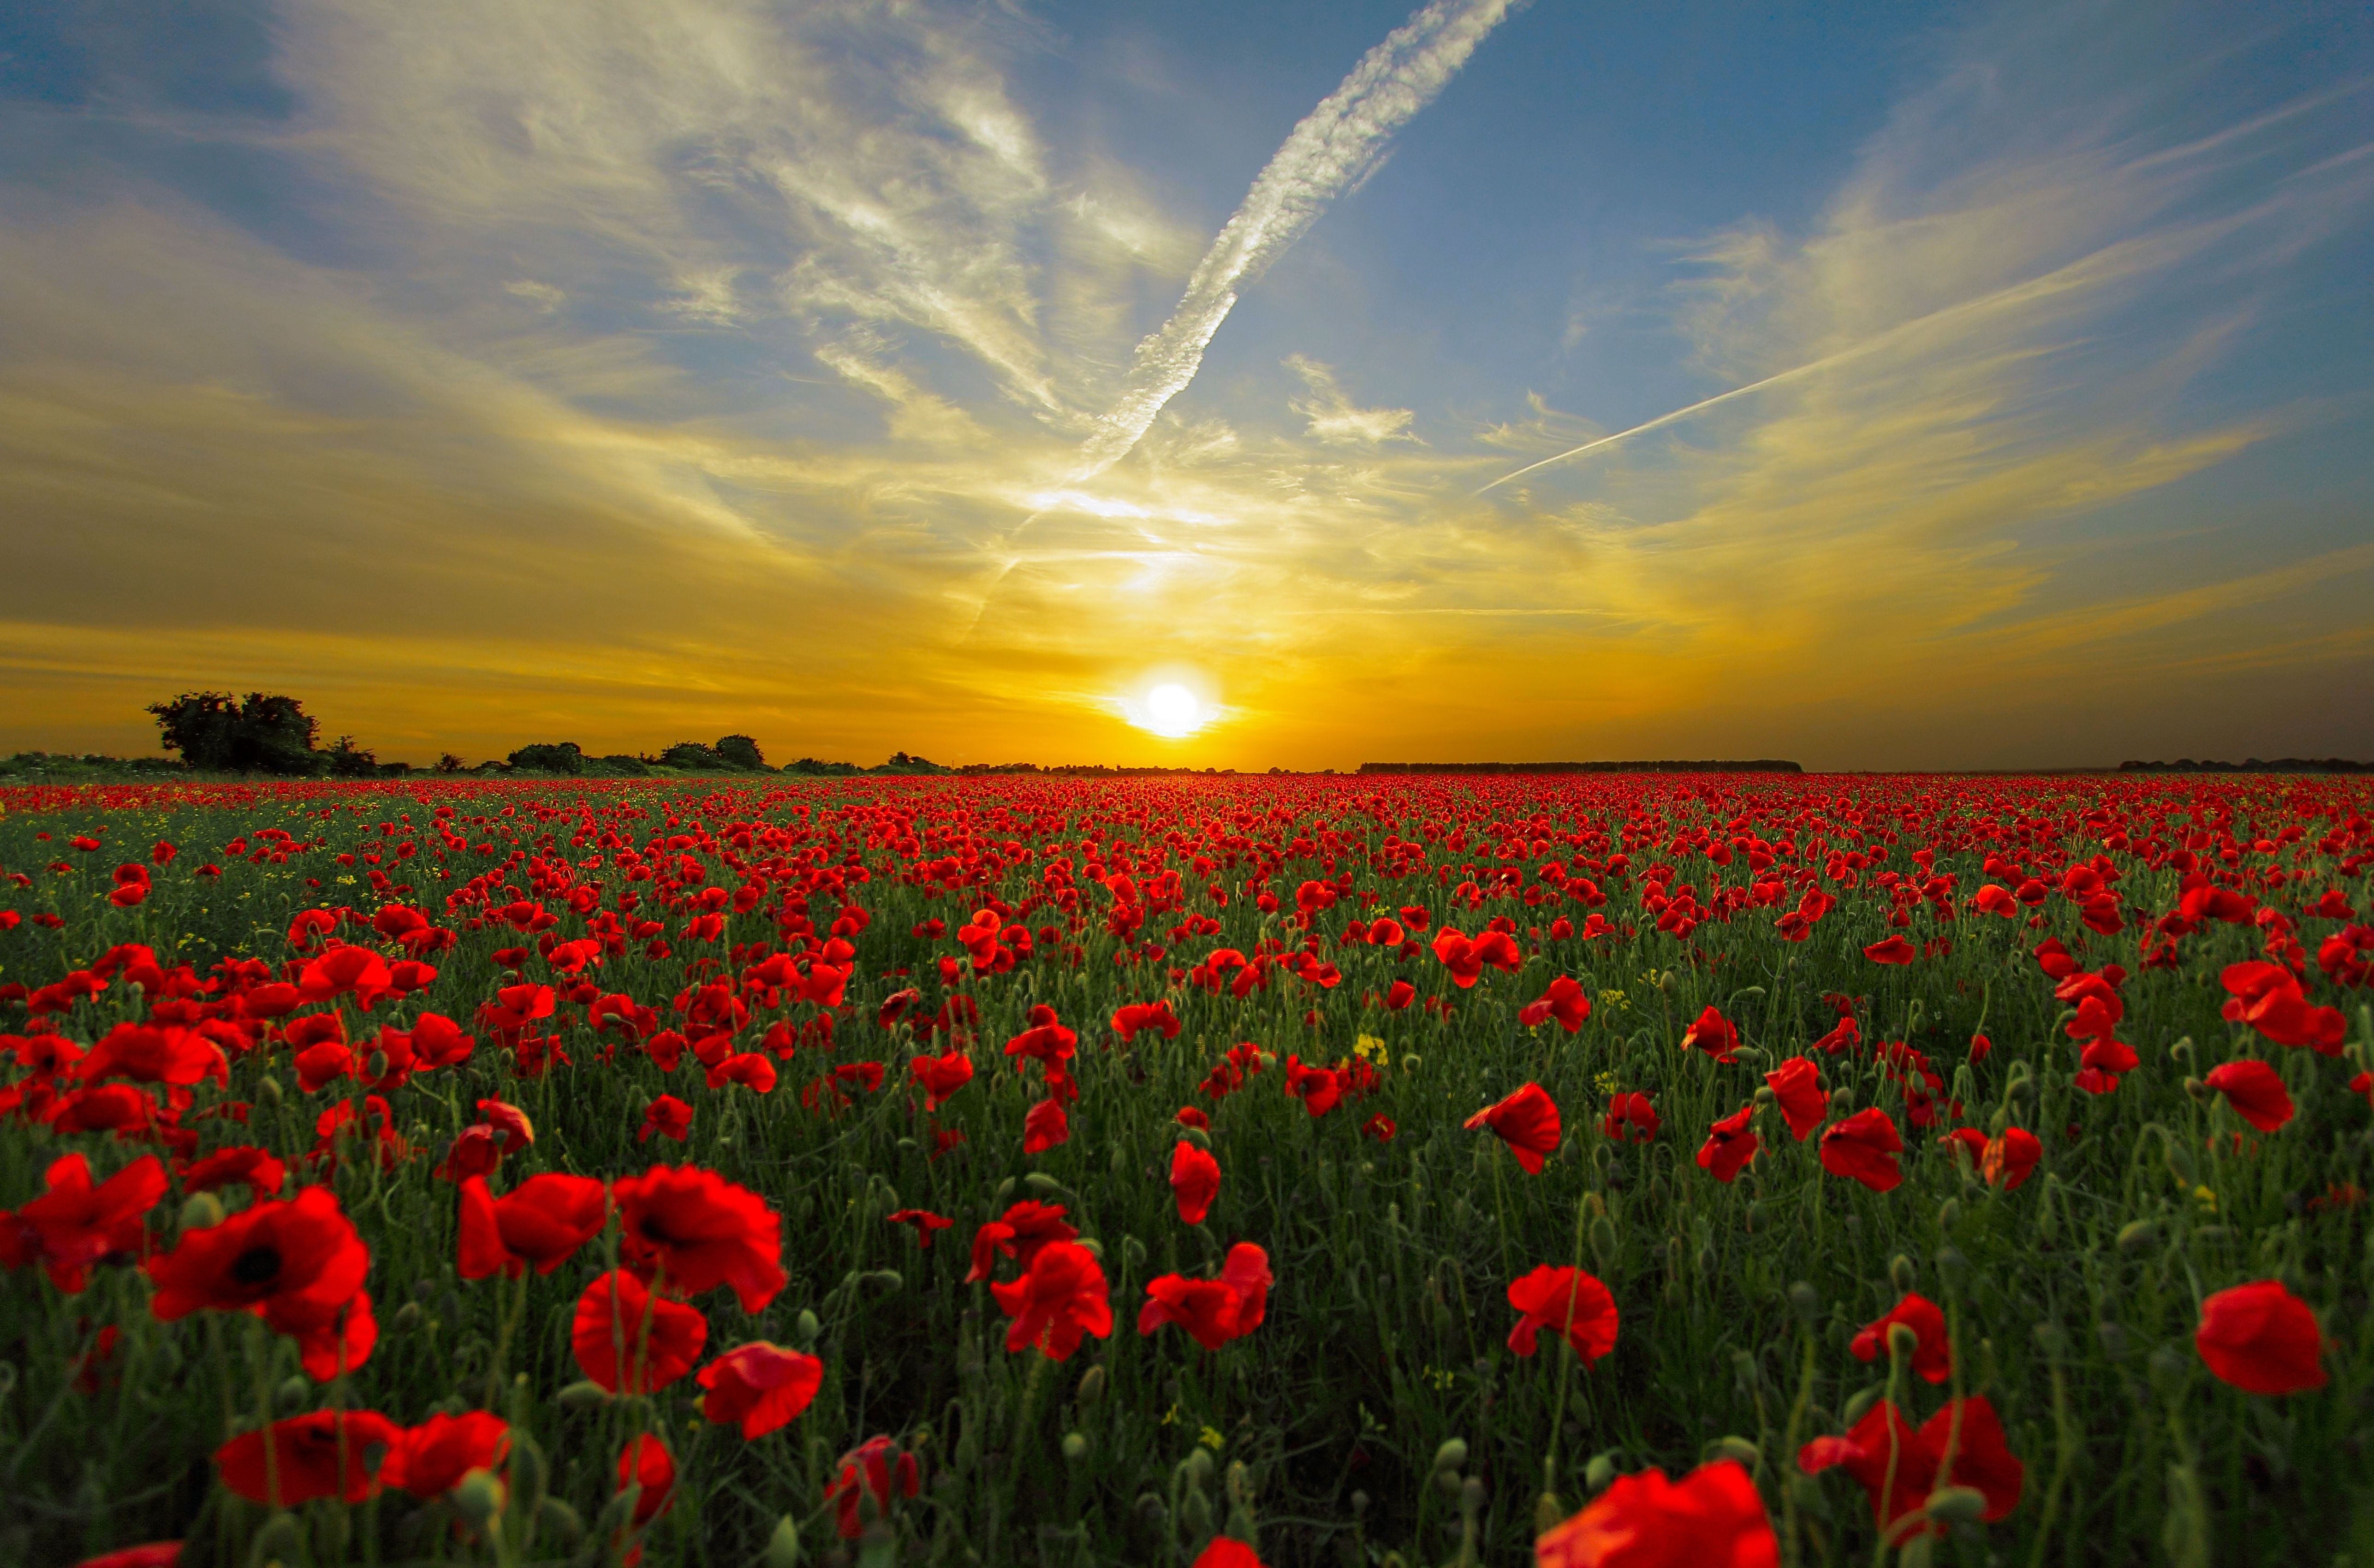 A poppy field in the sunset